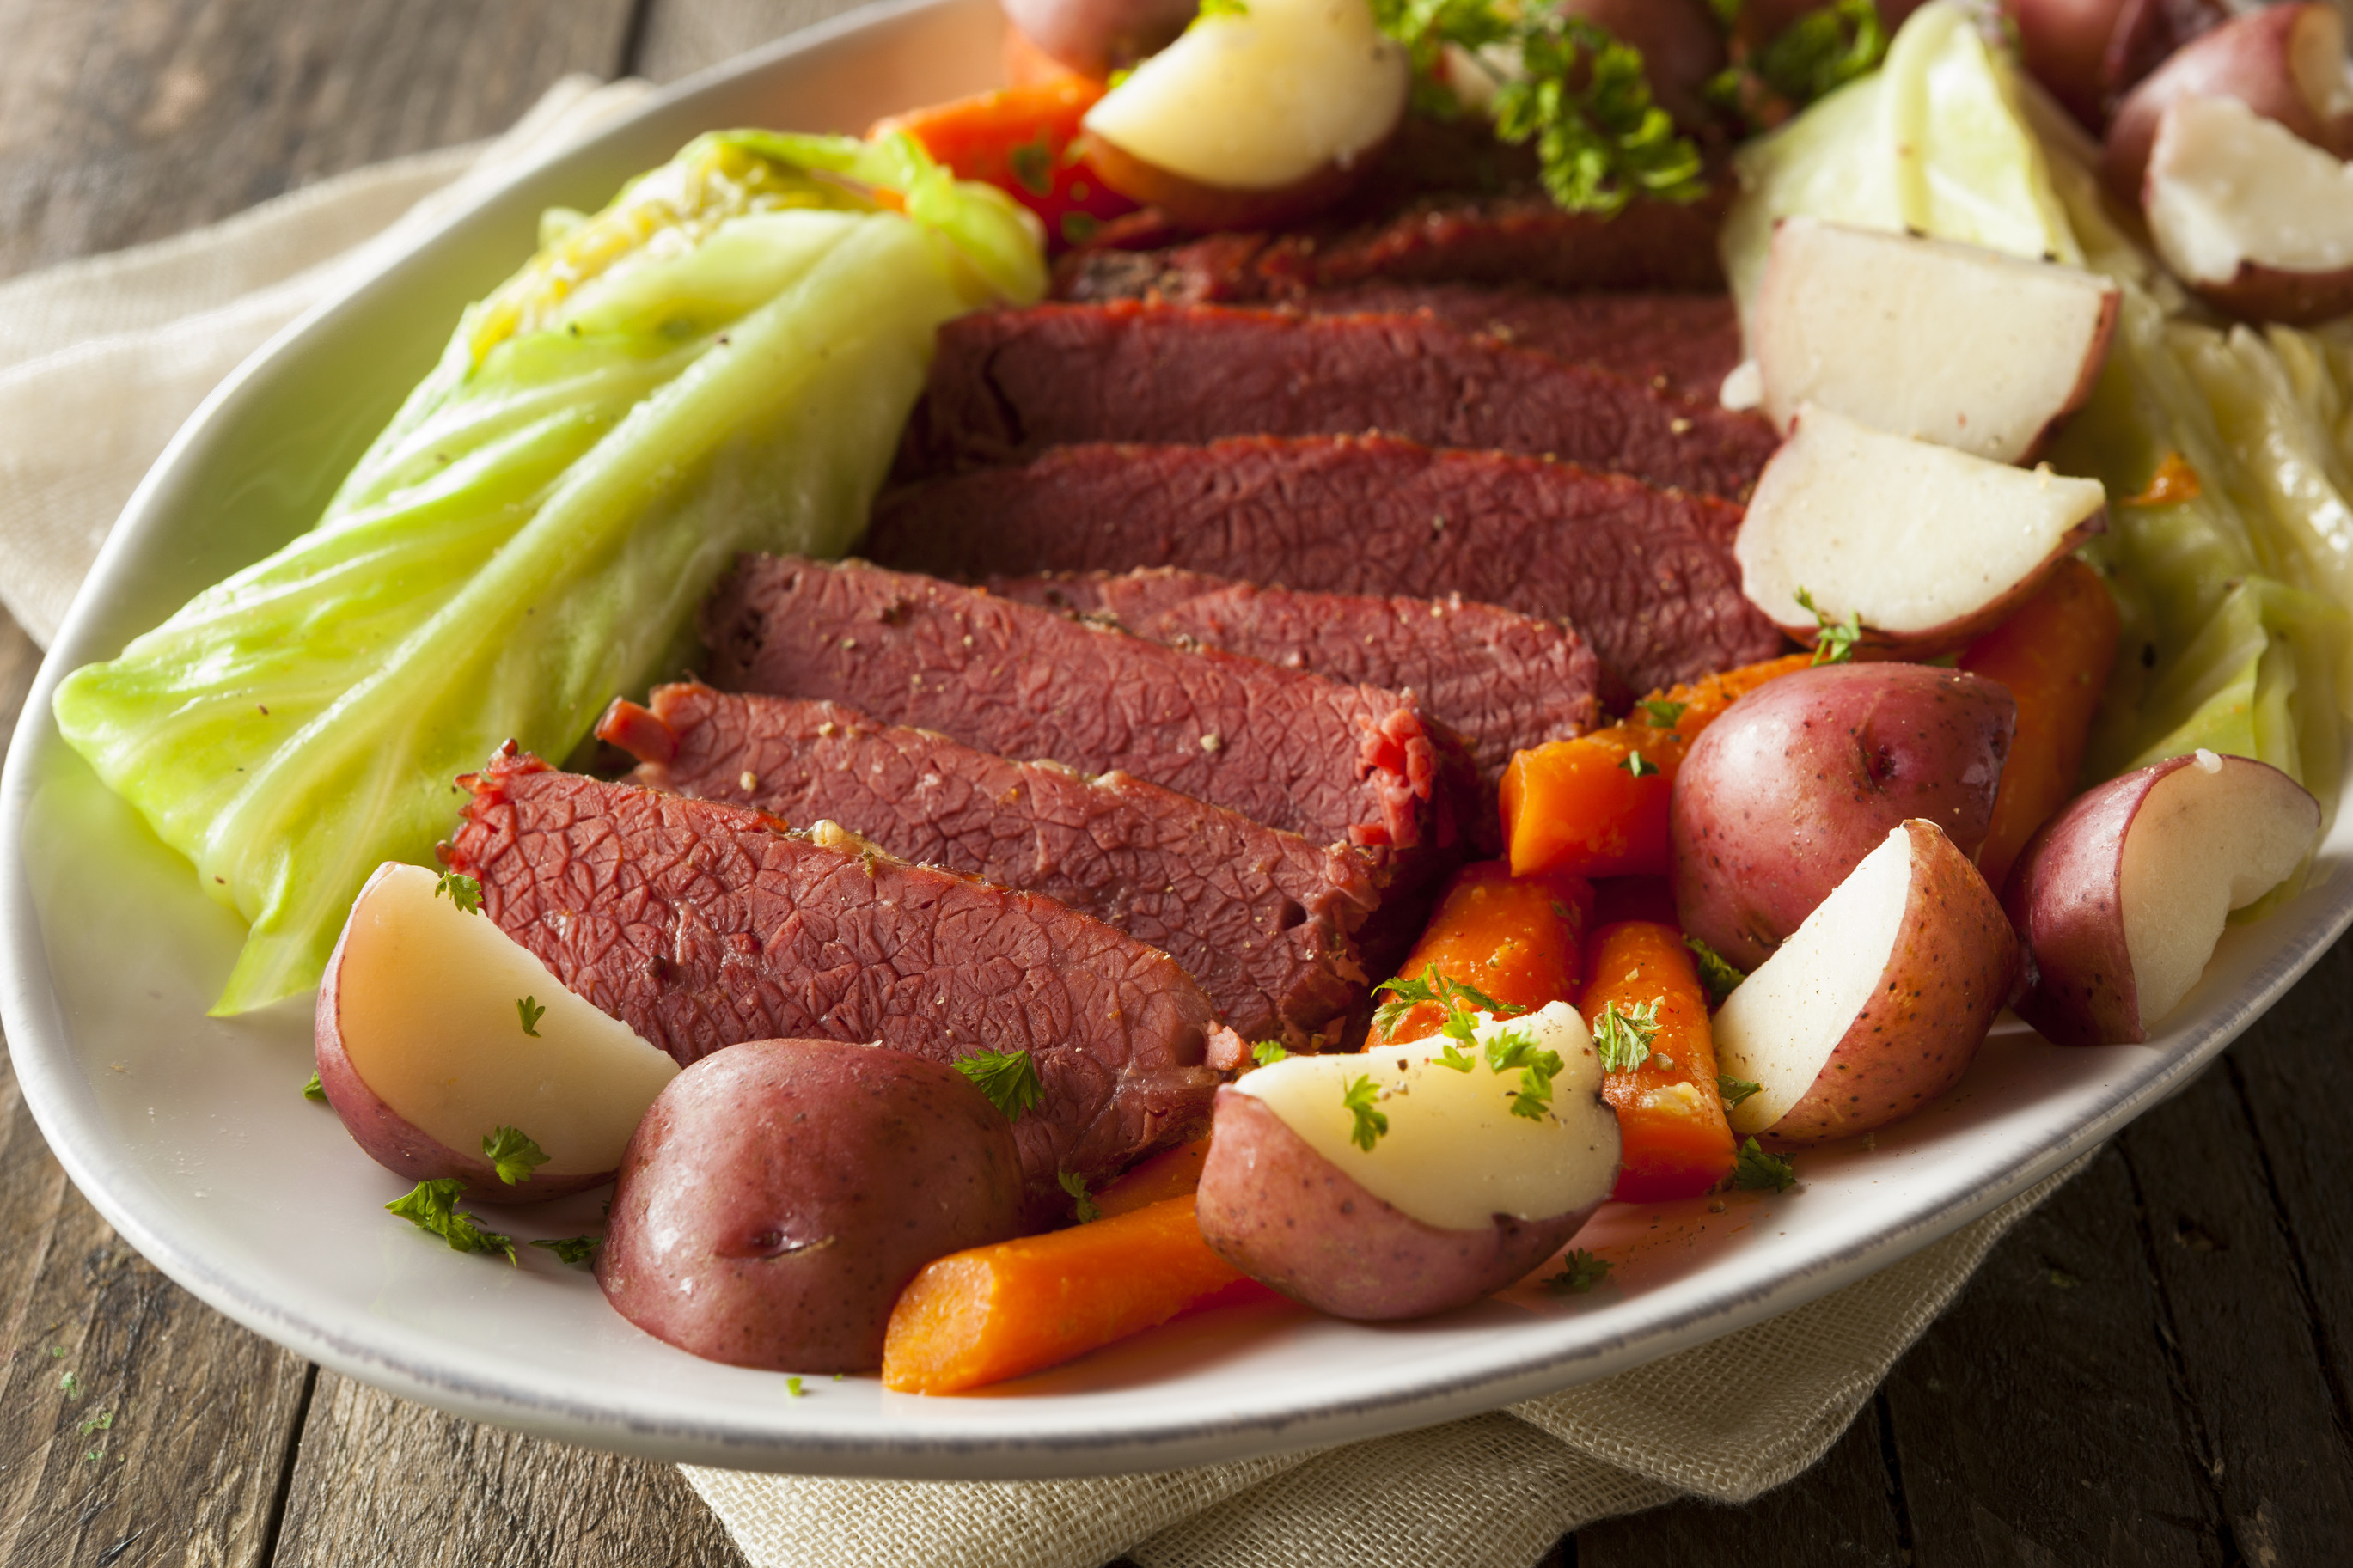 Cornbeef And Cabbage Recipe  Sumptuous Corned Beef & Cabbage Recipe Centsably Creative